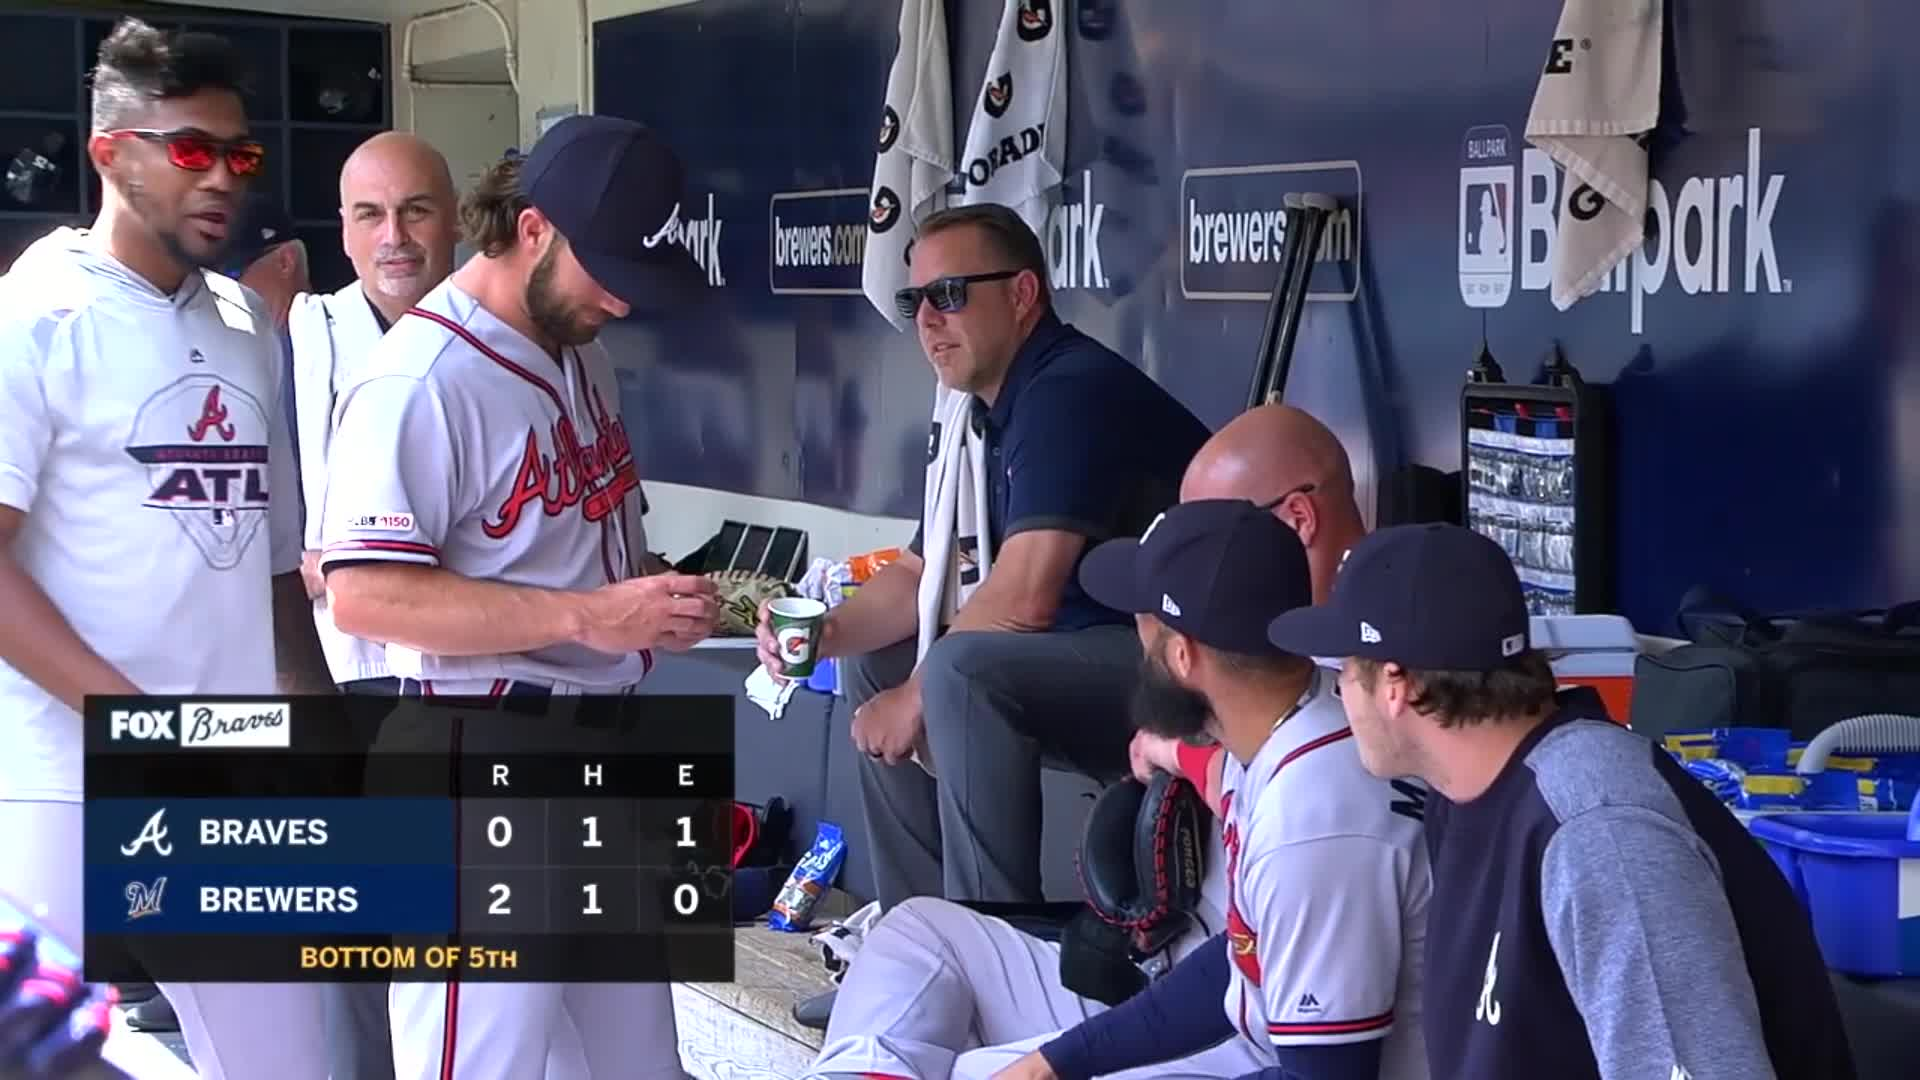 atlanta, baseball, braves, Charlie Culberson about to put a dip in, gets caught by camera. GIFs